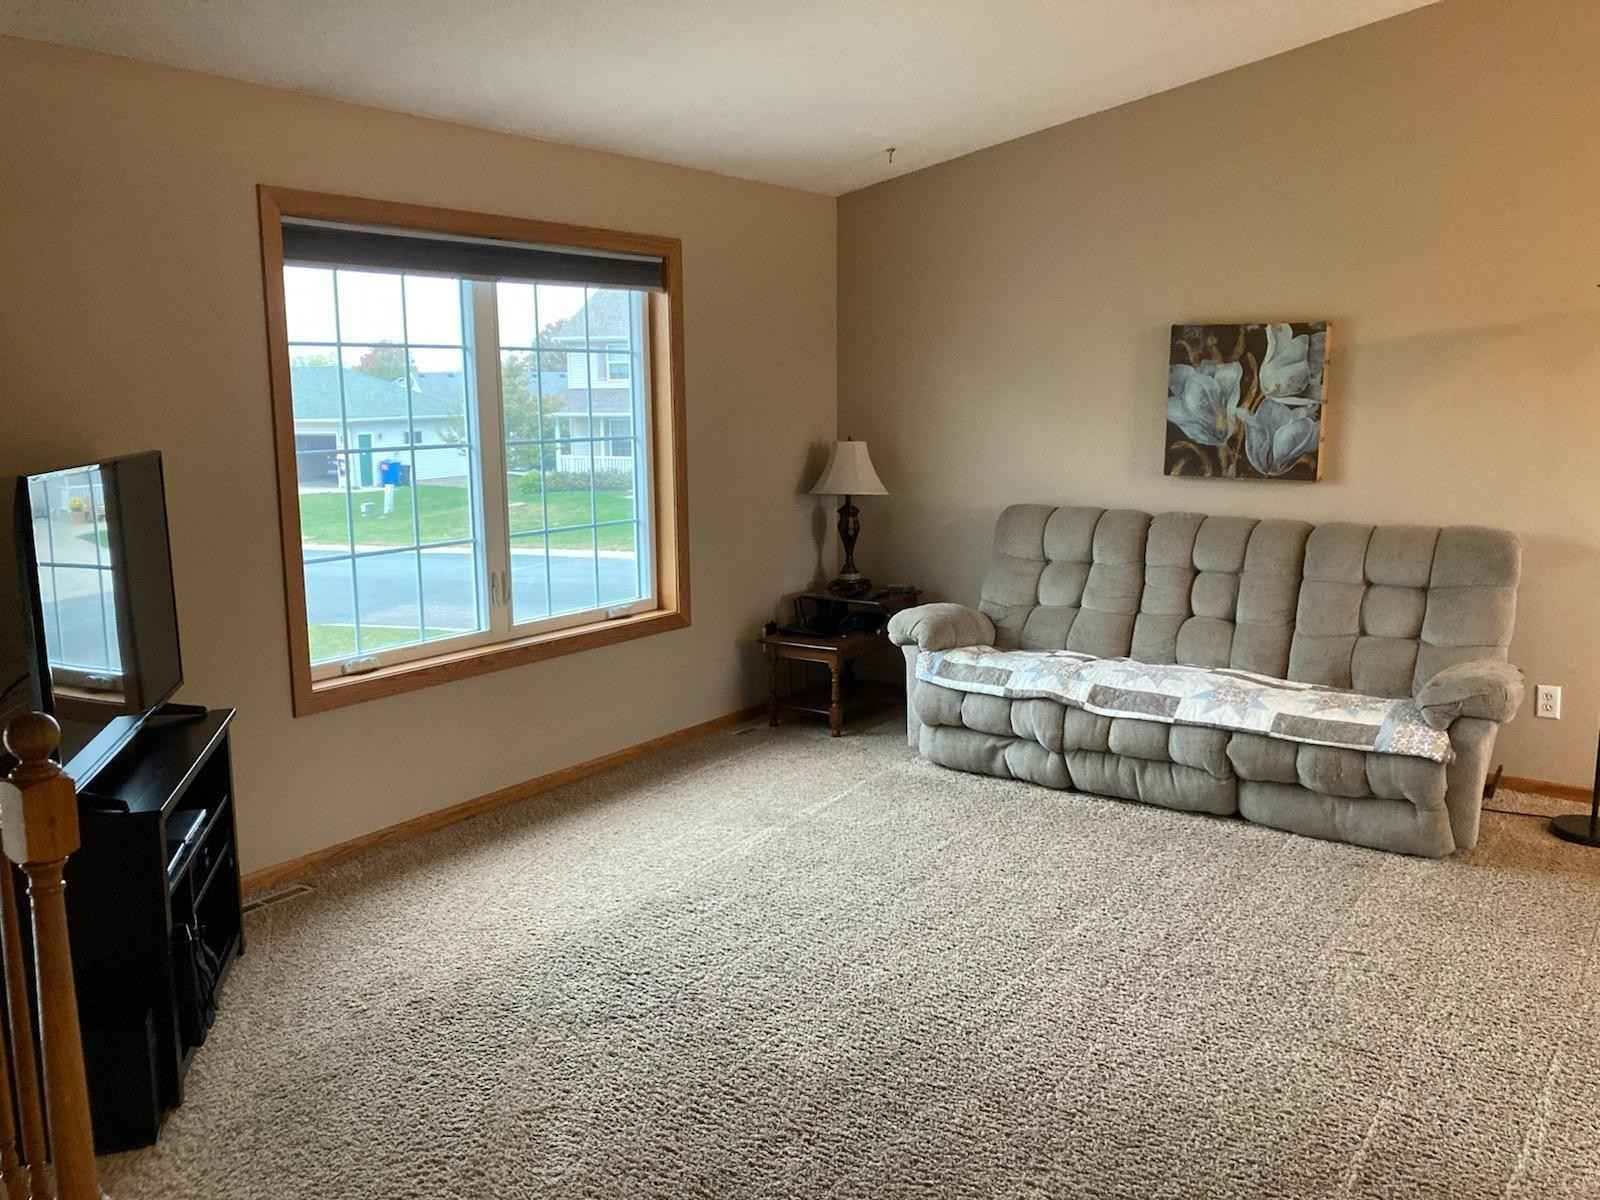 View 23 photos of this 4 bed, 2 bath, and 1,720 sqft. single_family home located at 510 Pheasant Run Ln NE, Stewartville, Minnesota 55976 is Pending for $269,900.